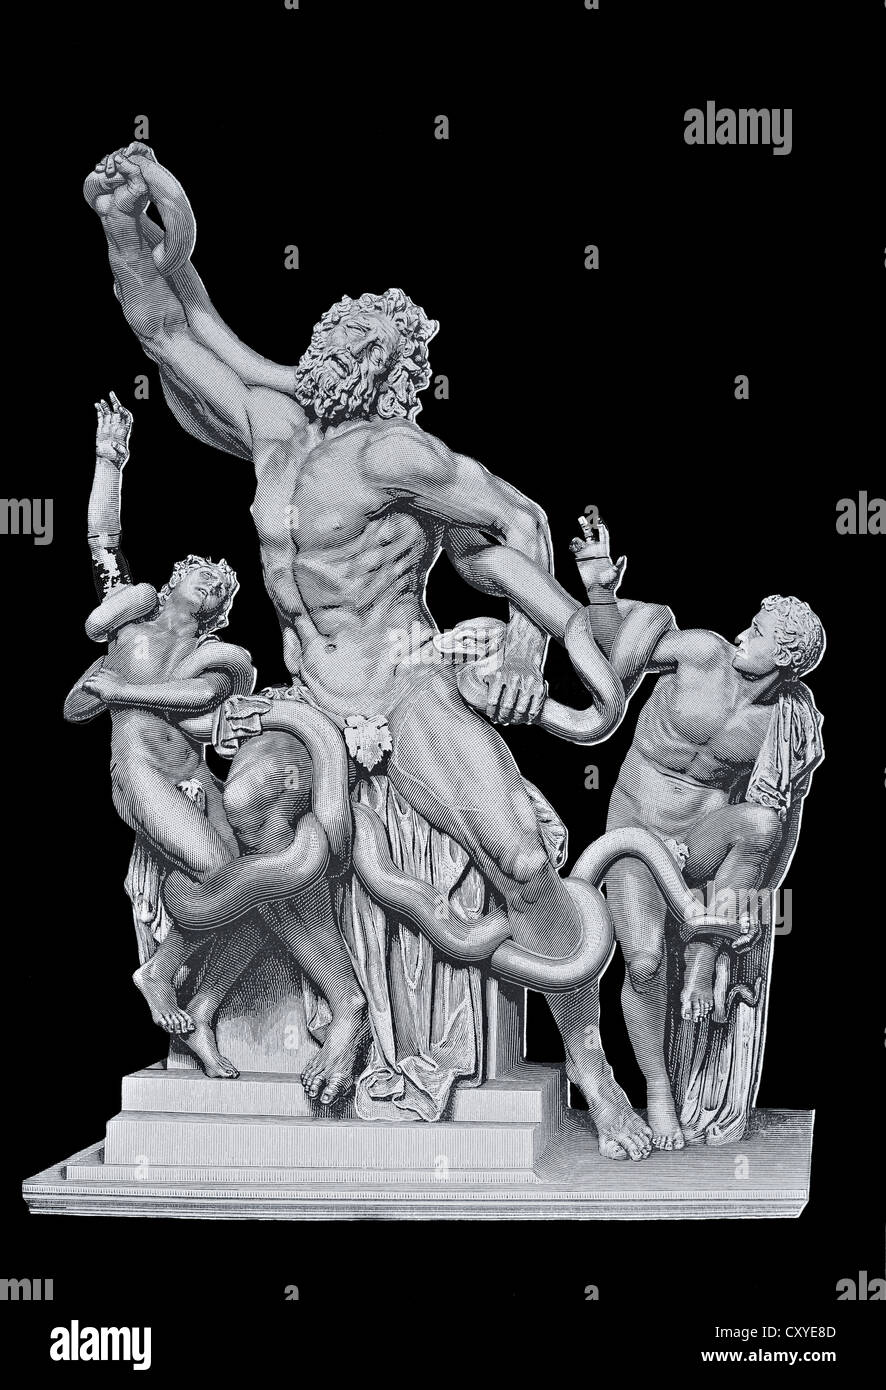 Copper engraving, Laocoon Group - Stock Image